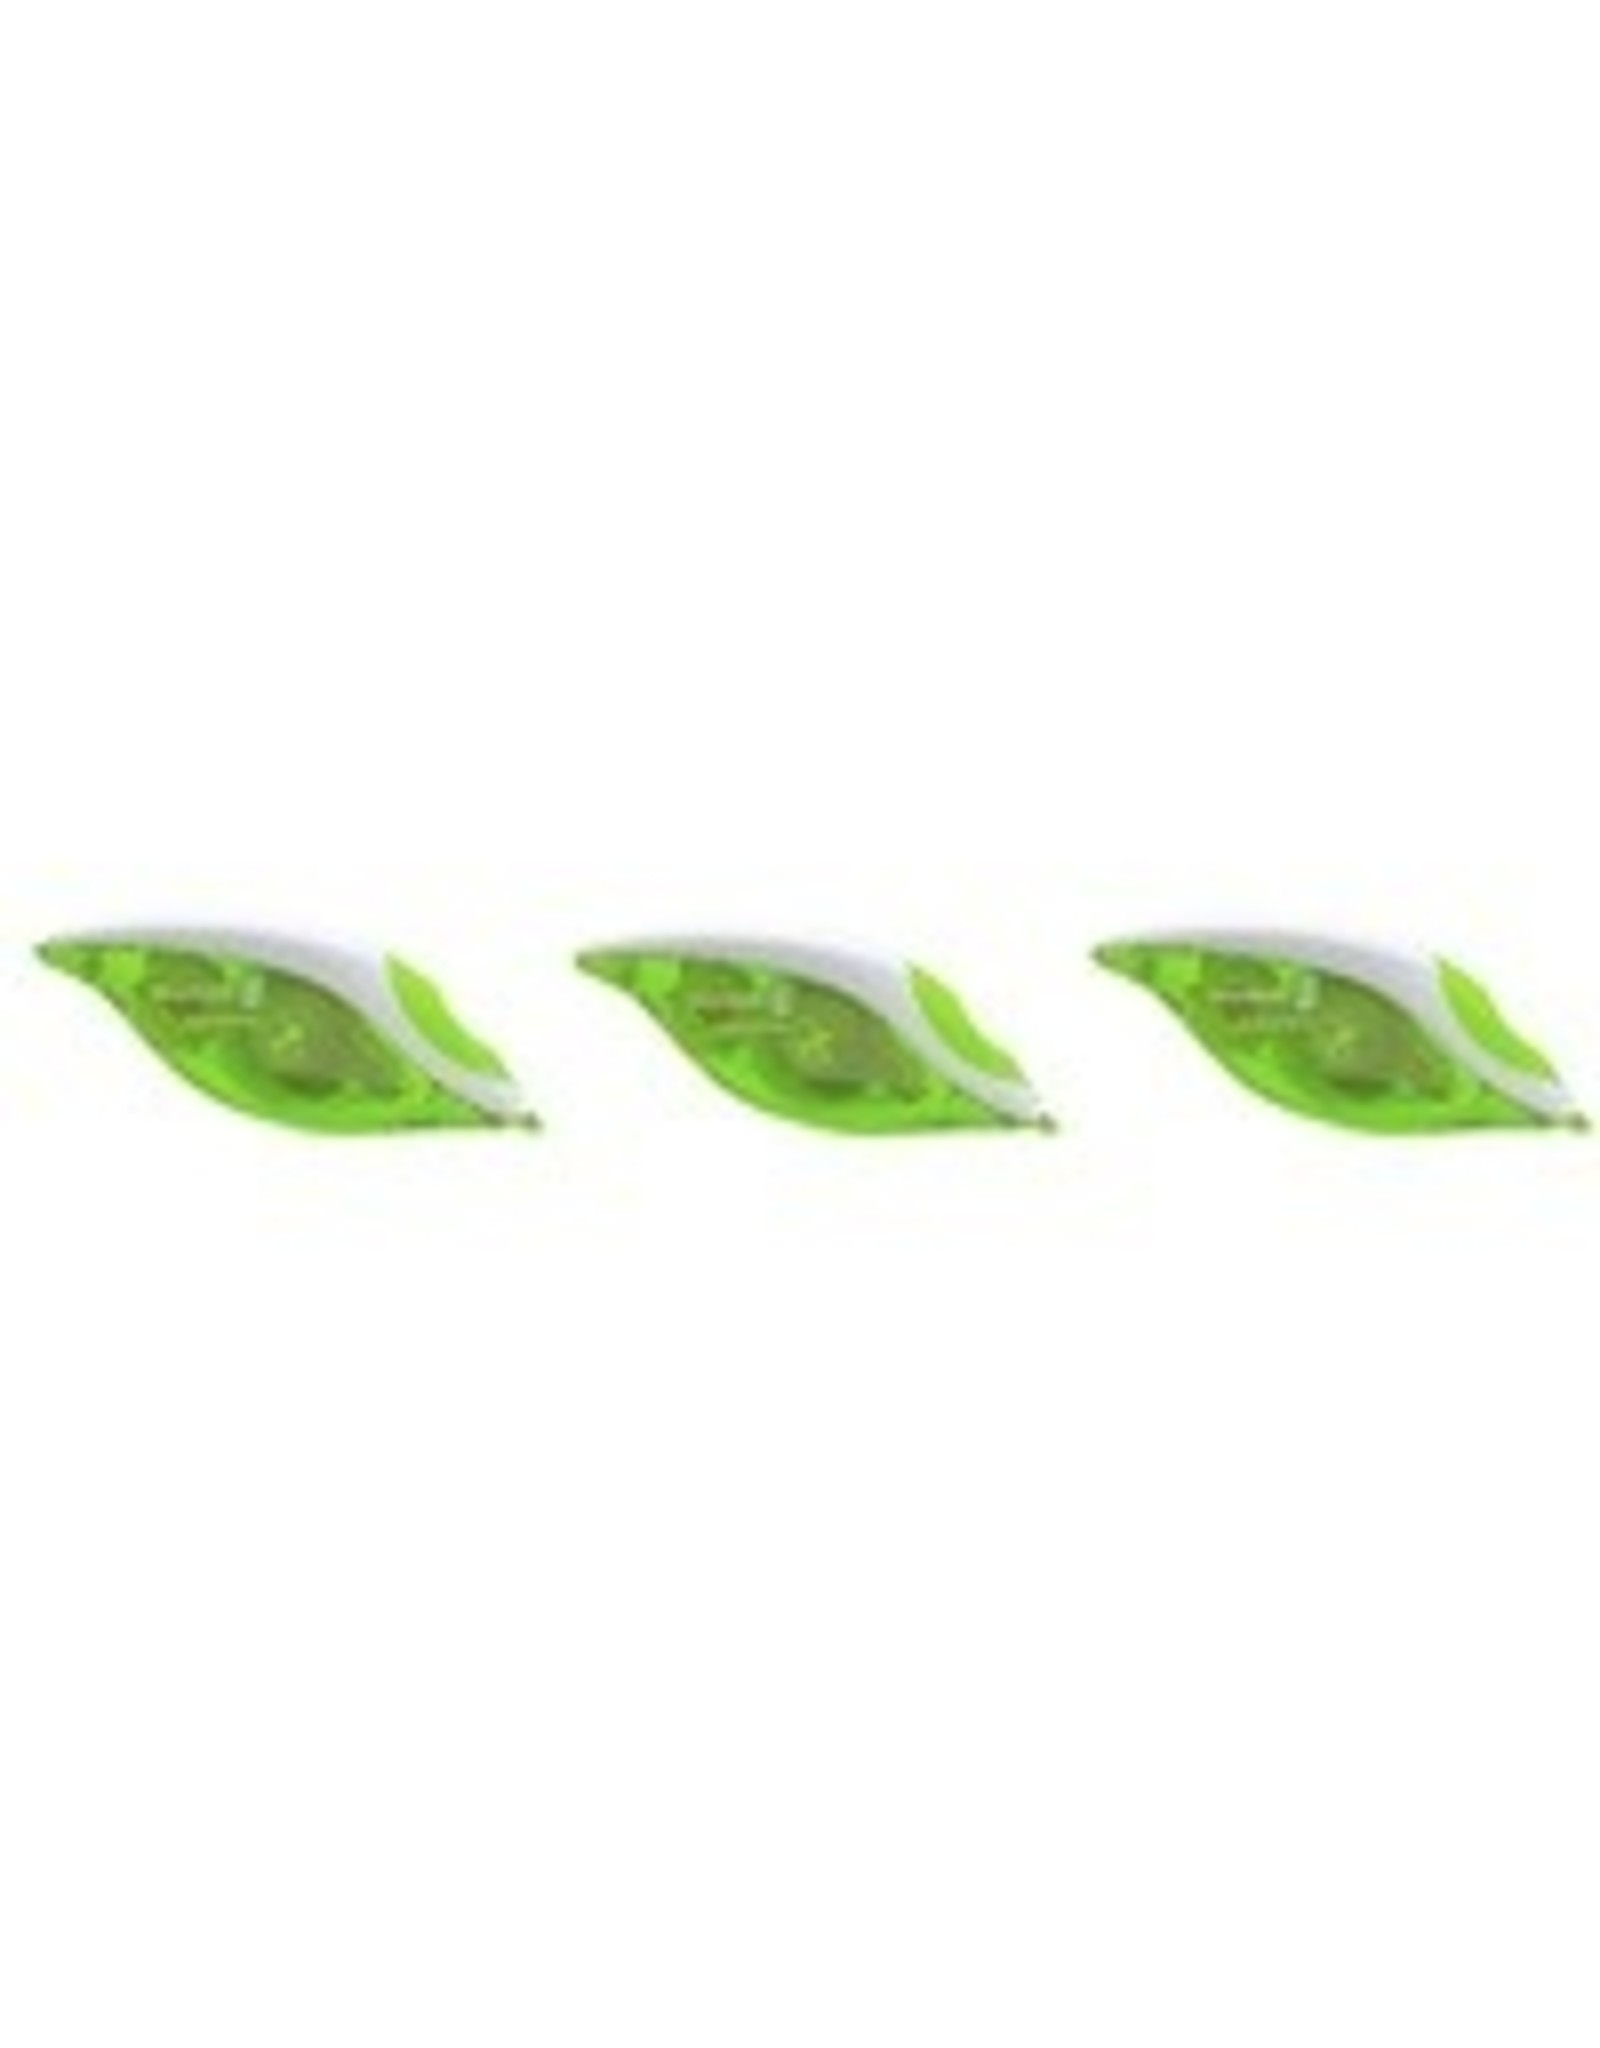 Liquid Paper CORRECTION TAPE-LIQUID PAPER DRYLINE GRIP, 3/PACK